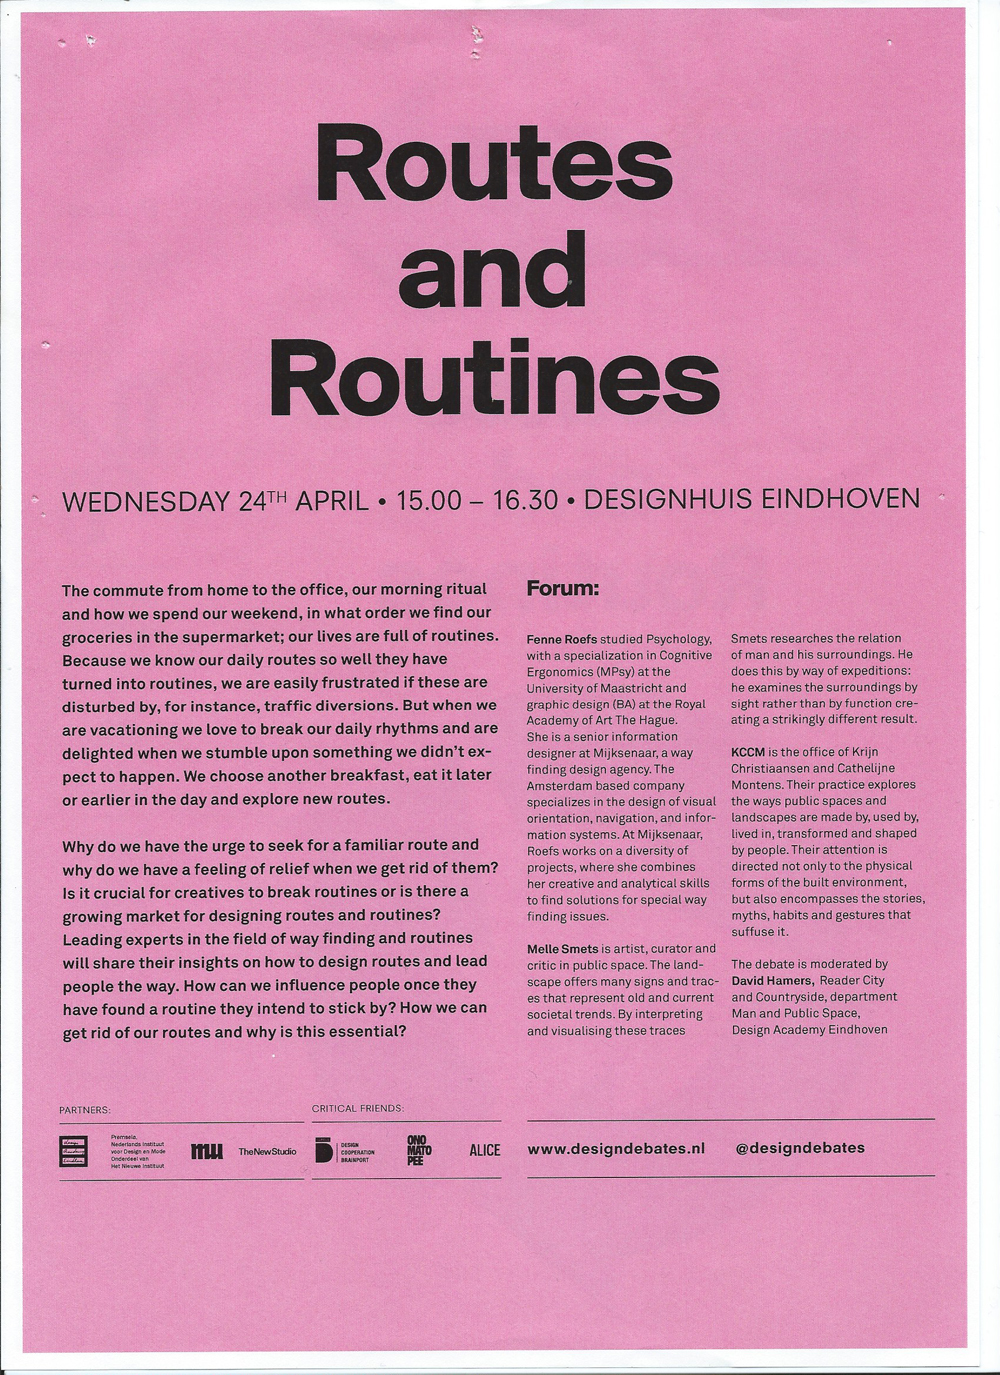 Routes and Routines1, HNI